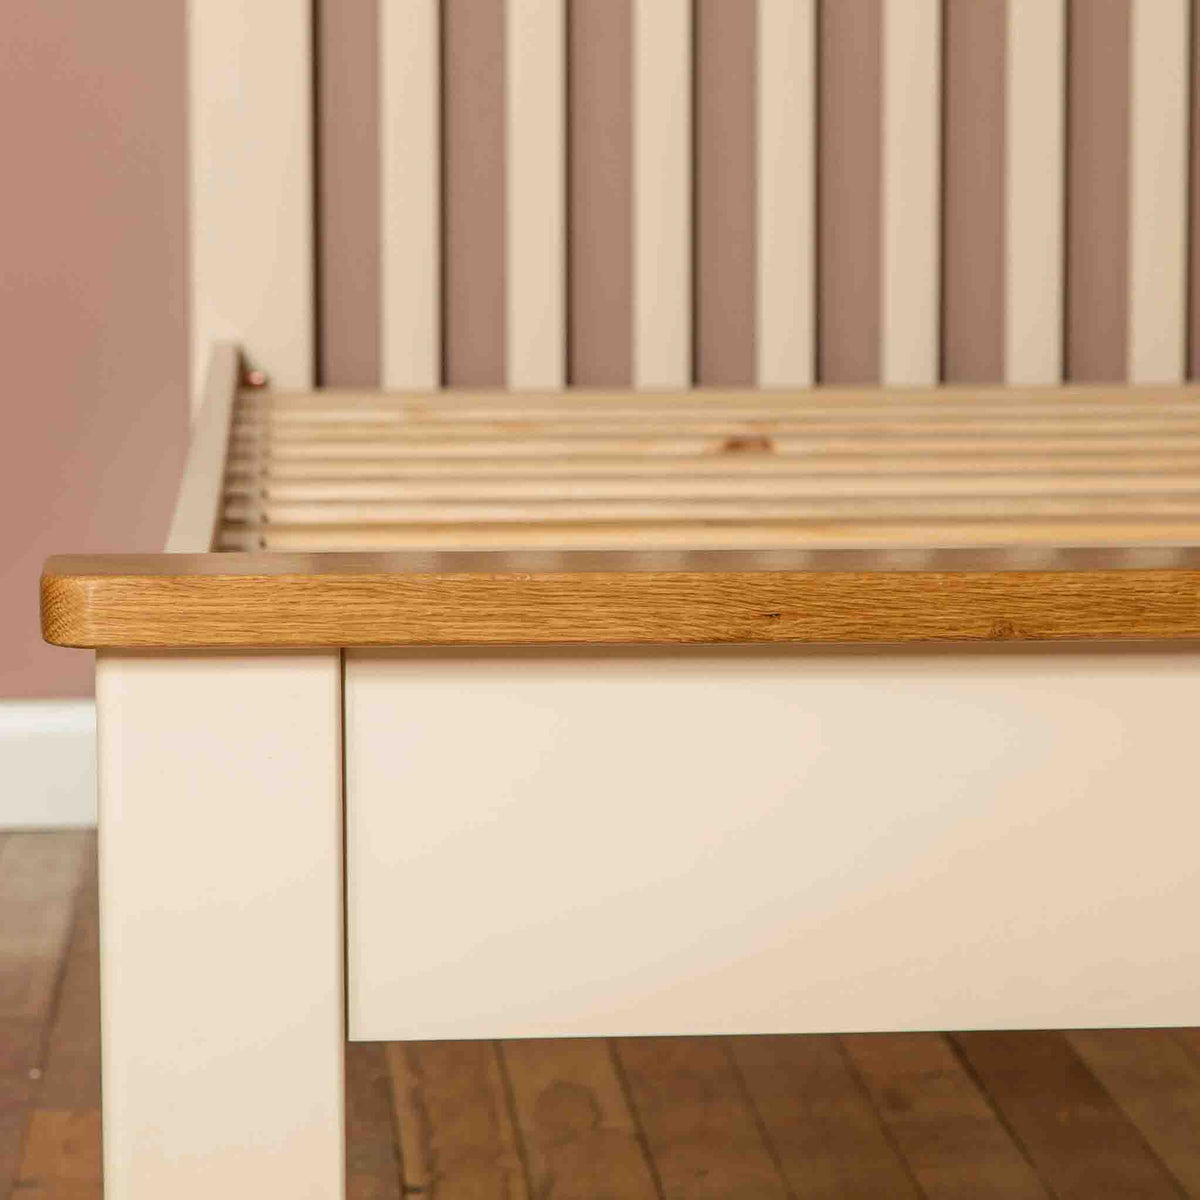 Foot end view of The Padstow Cream 3 ft Wooden Single Bed Frame